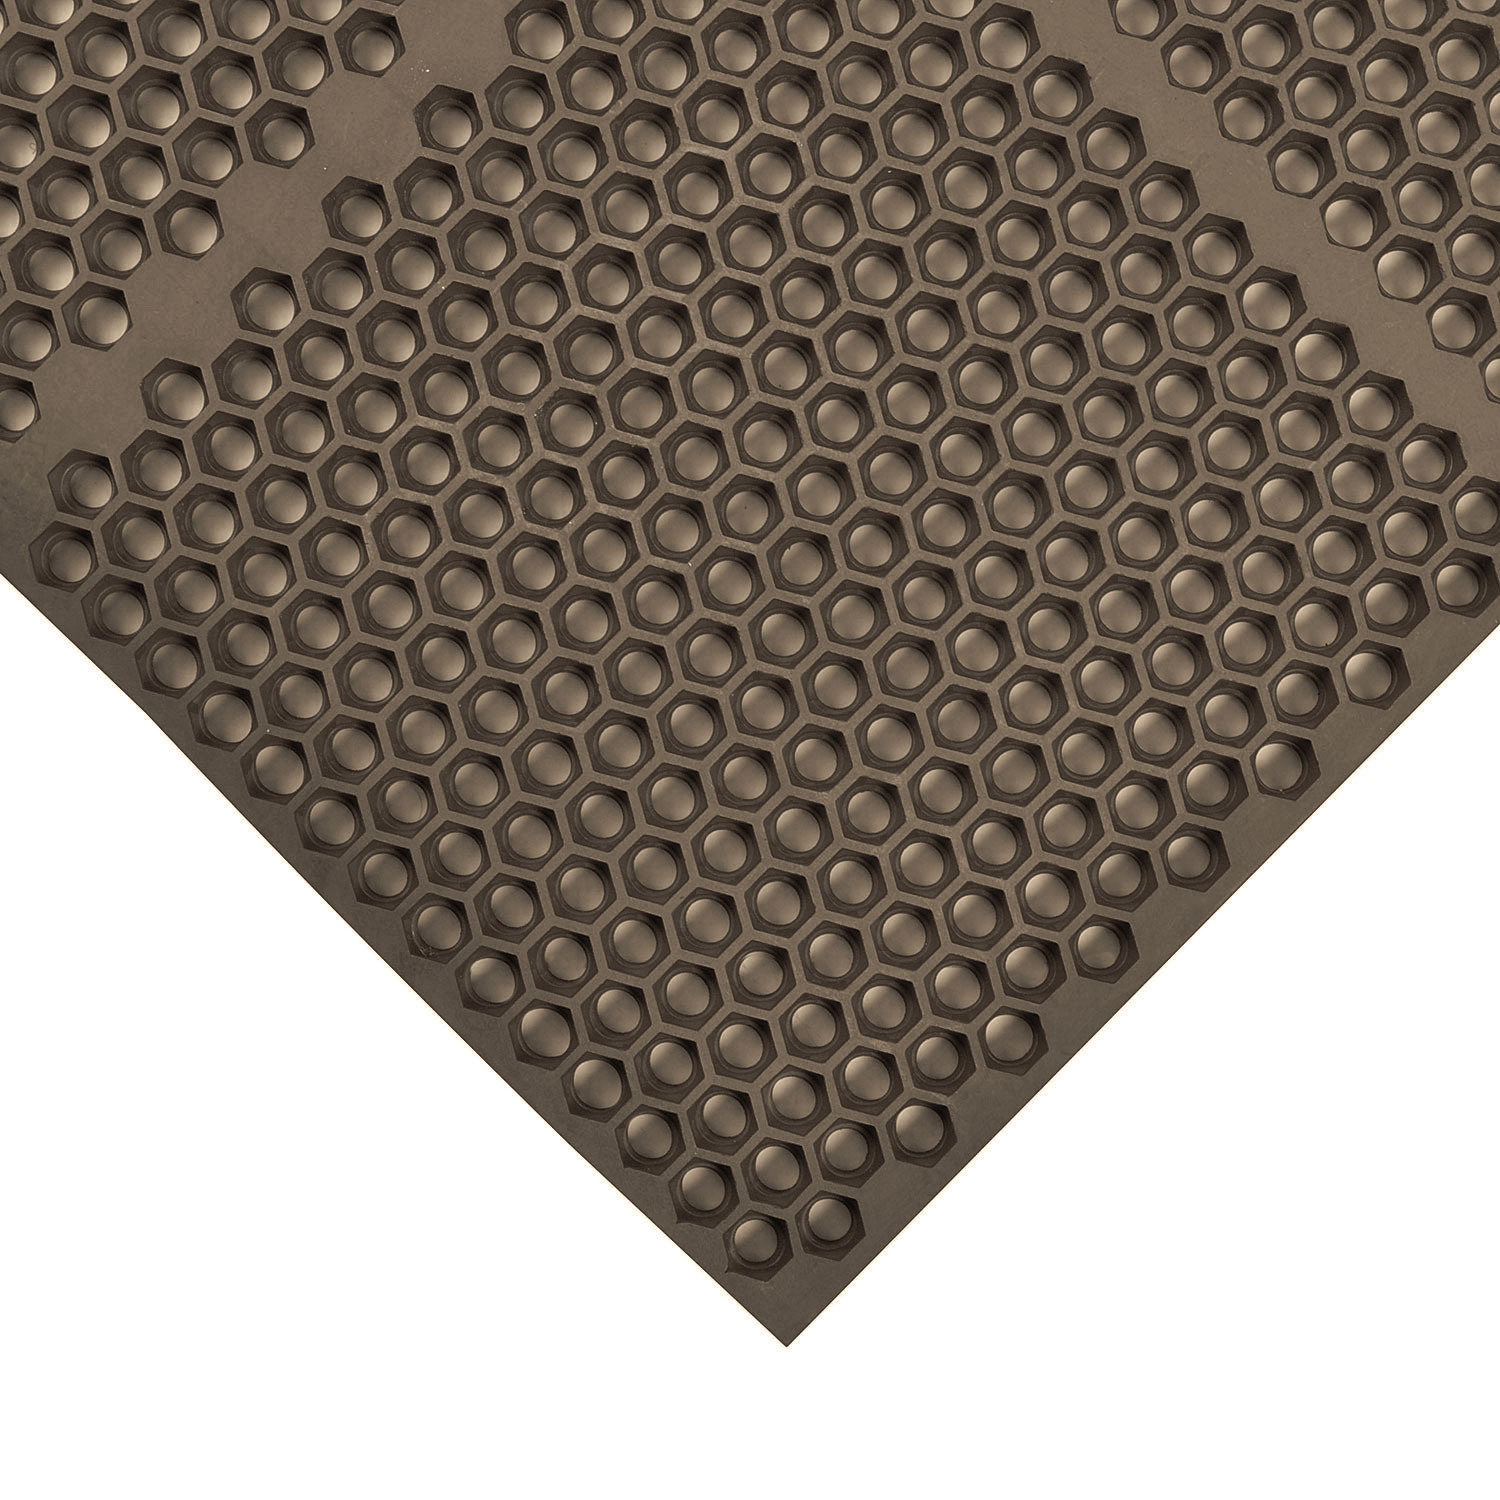 NoTrax 406181 Optimat Grease-Resistant Floor Mat, 36 x 72 in, 1/2 i